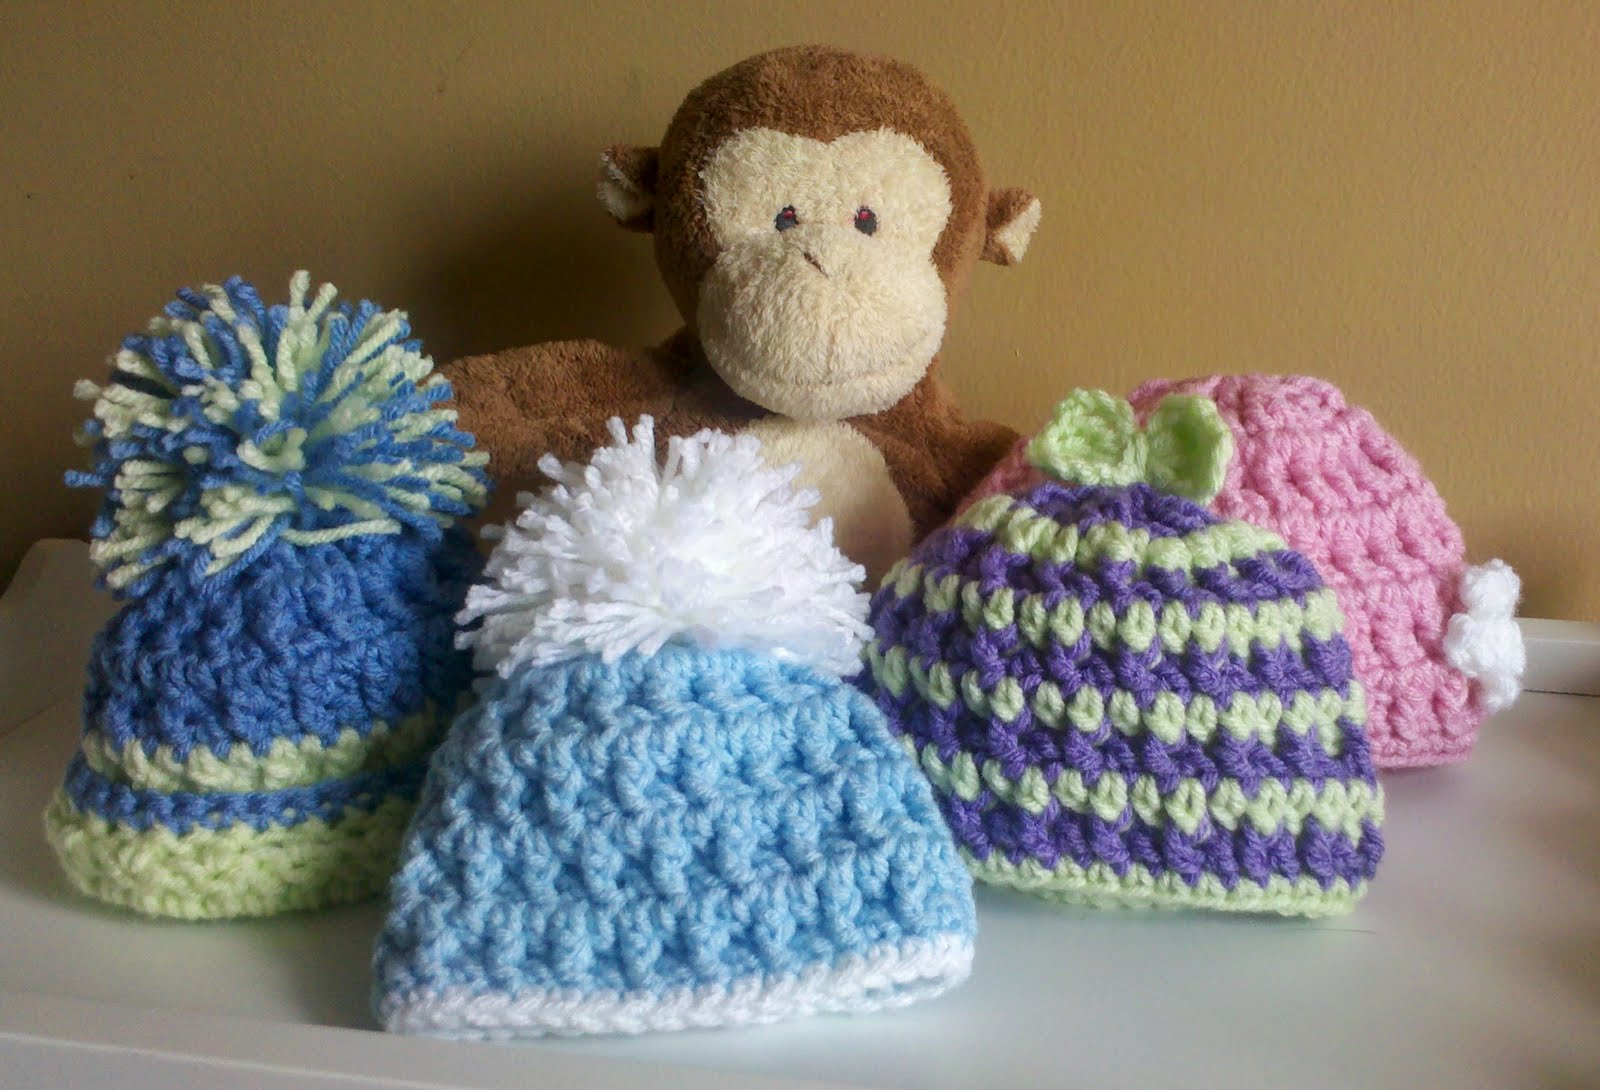 Crochet Patterns Hats For Toddlers : SmoothFox Crochet and Knit: SmoothFoxs Kool Kids Hats ...